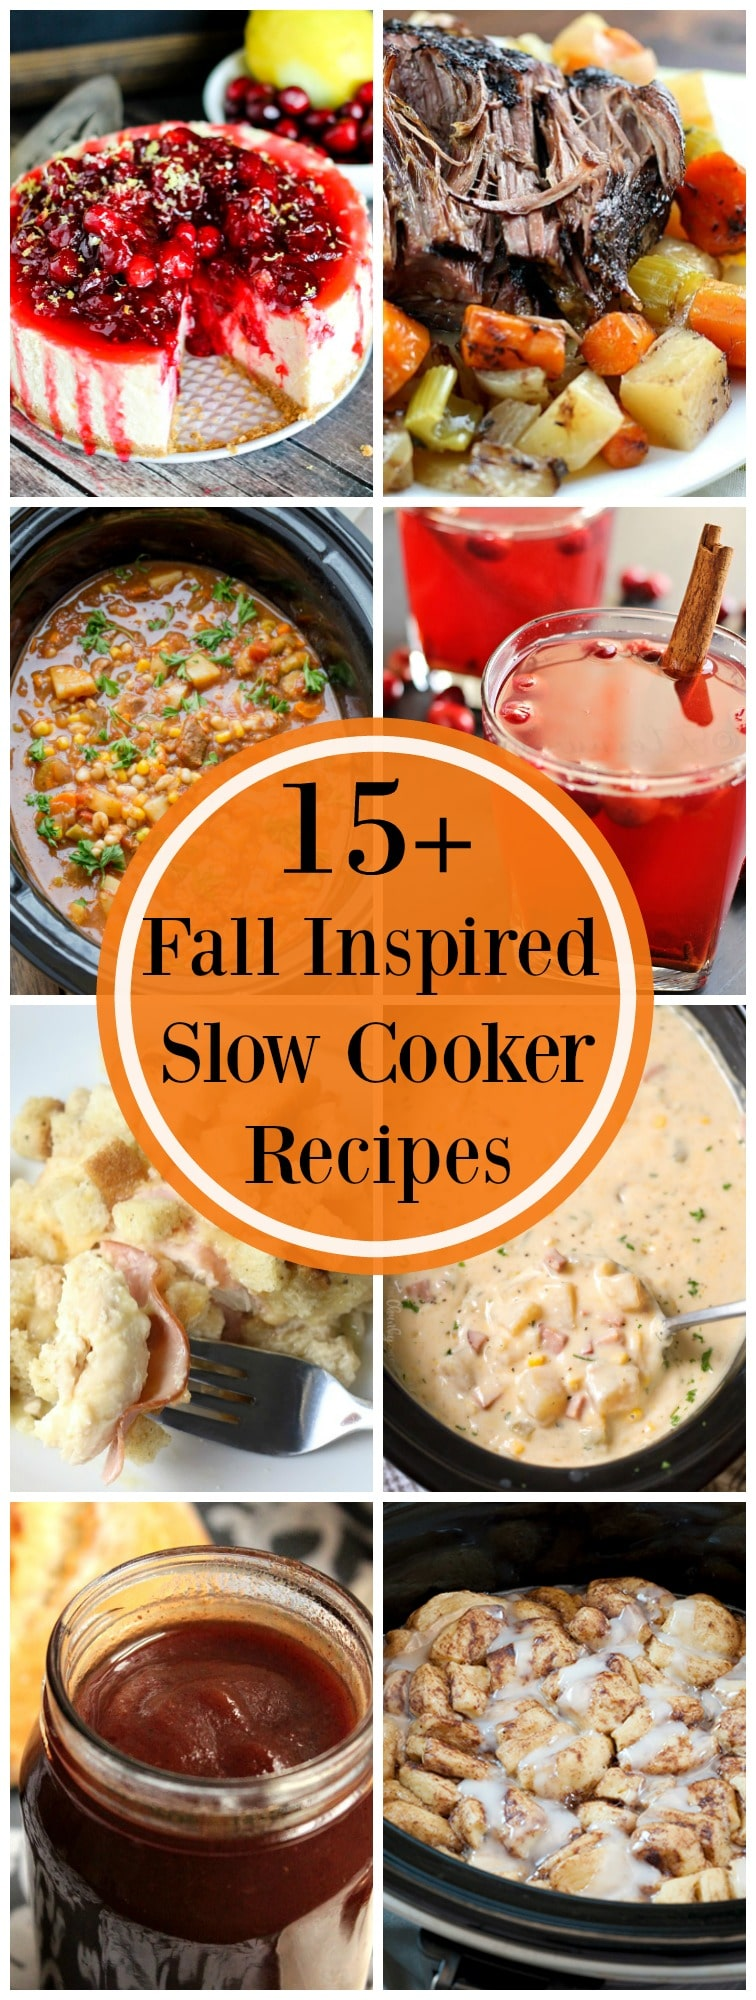 When the weather cools down, it's the time to break out your slow cooker! This slow cooker recipe collection has everything you're looking for!